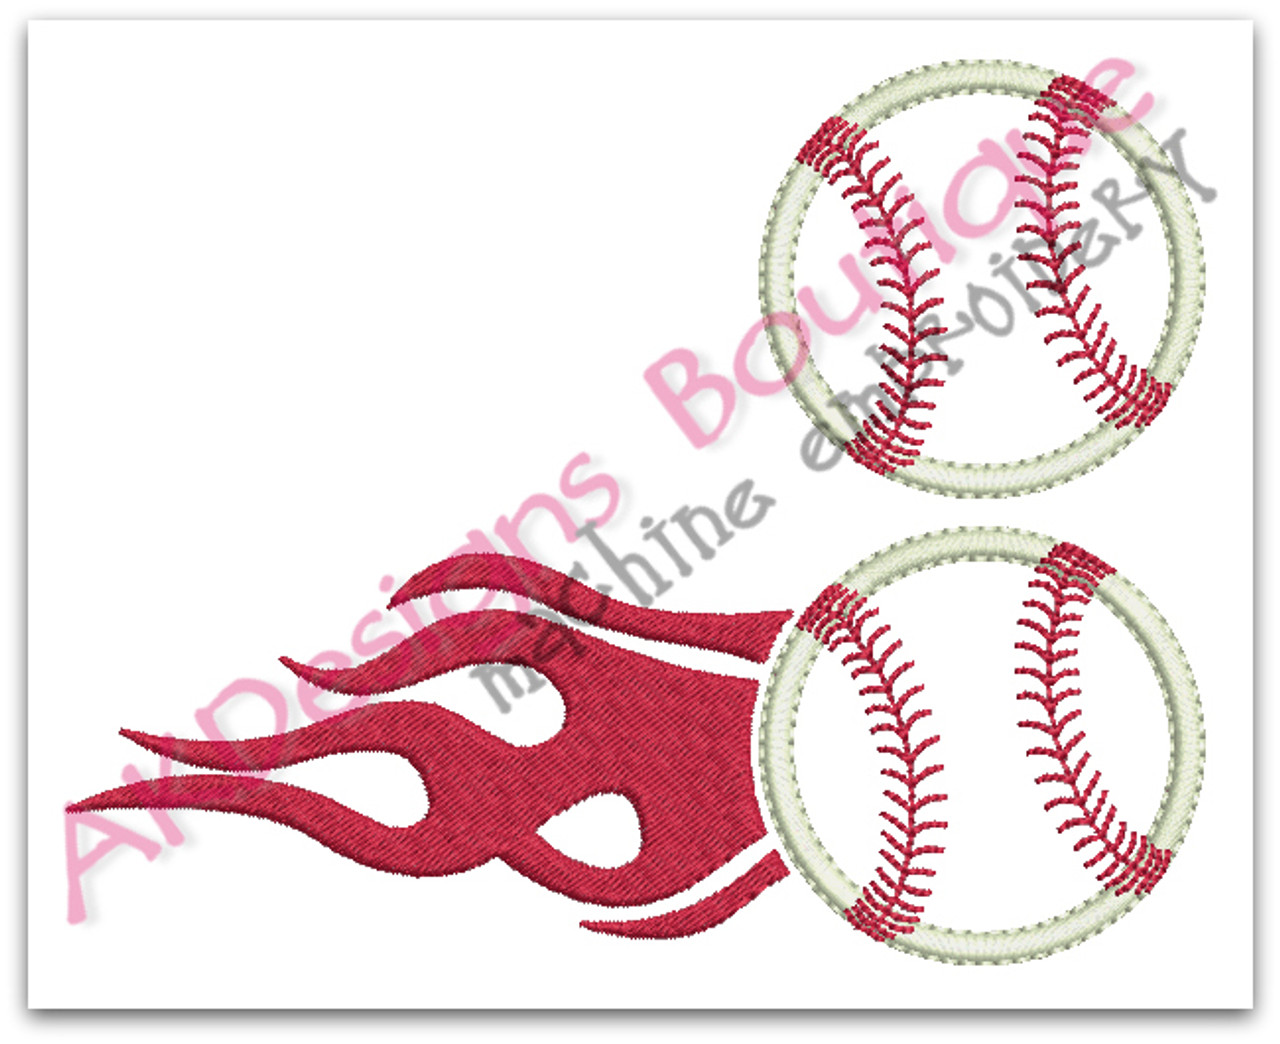 Applique Baseball Or Softball With Flames Machine Embroidery Designs